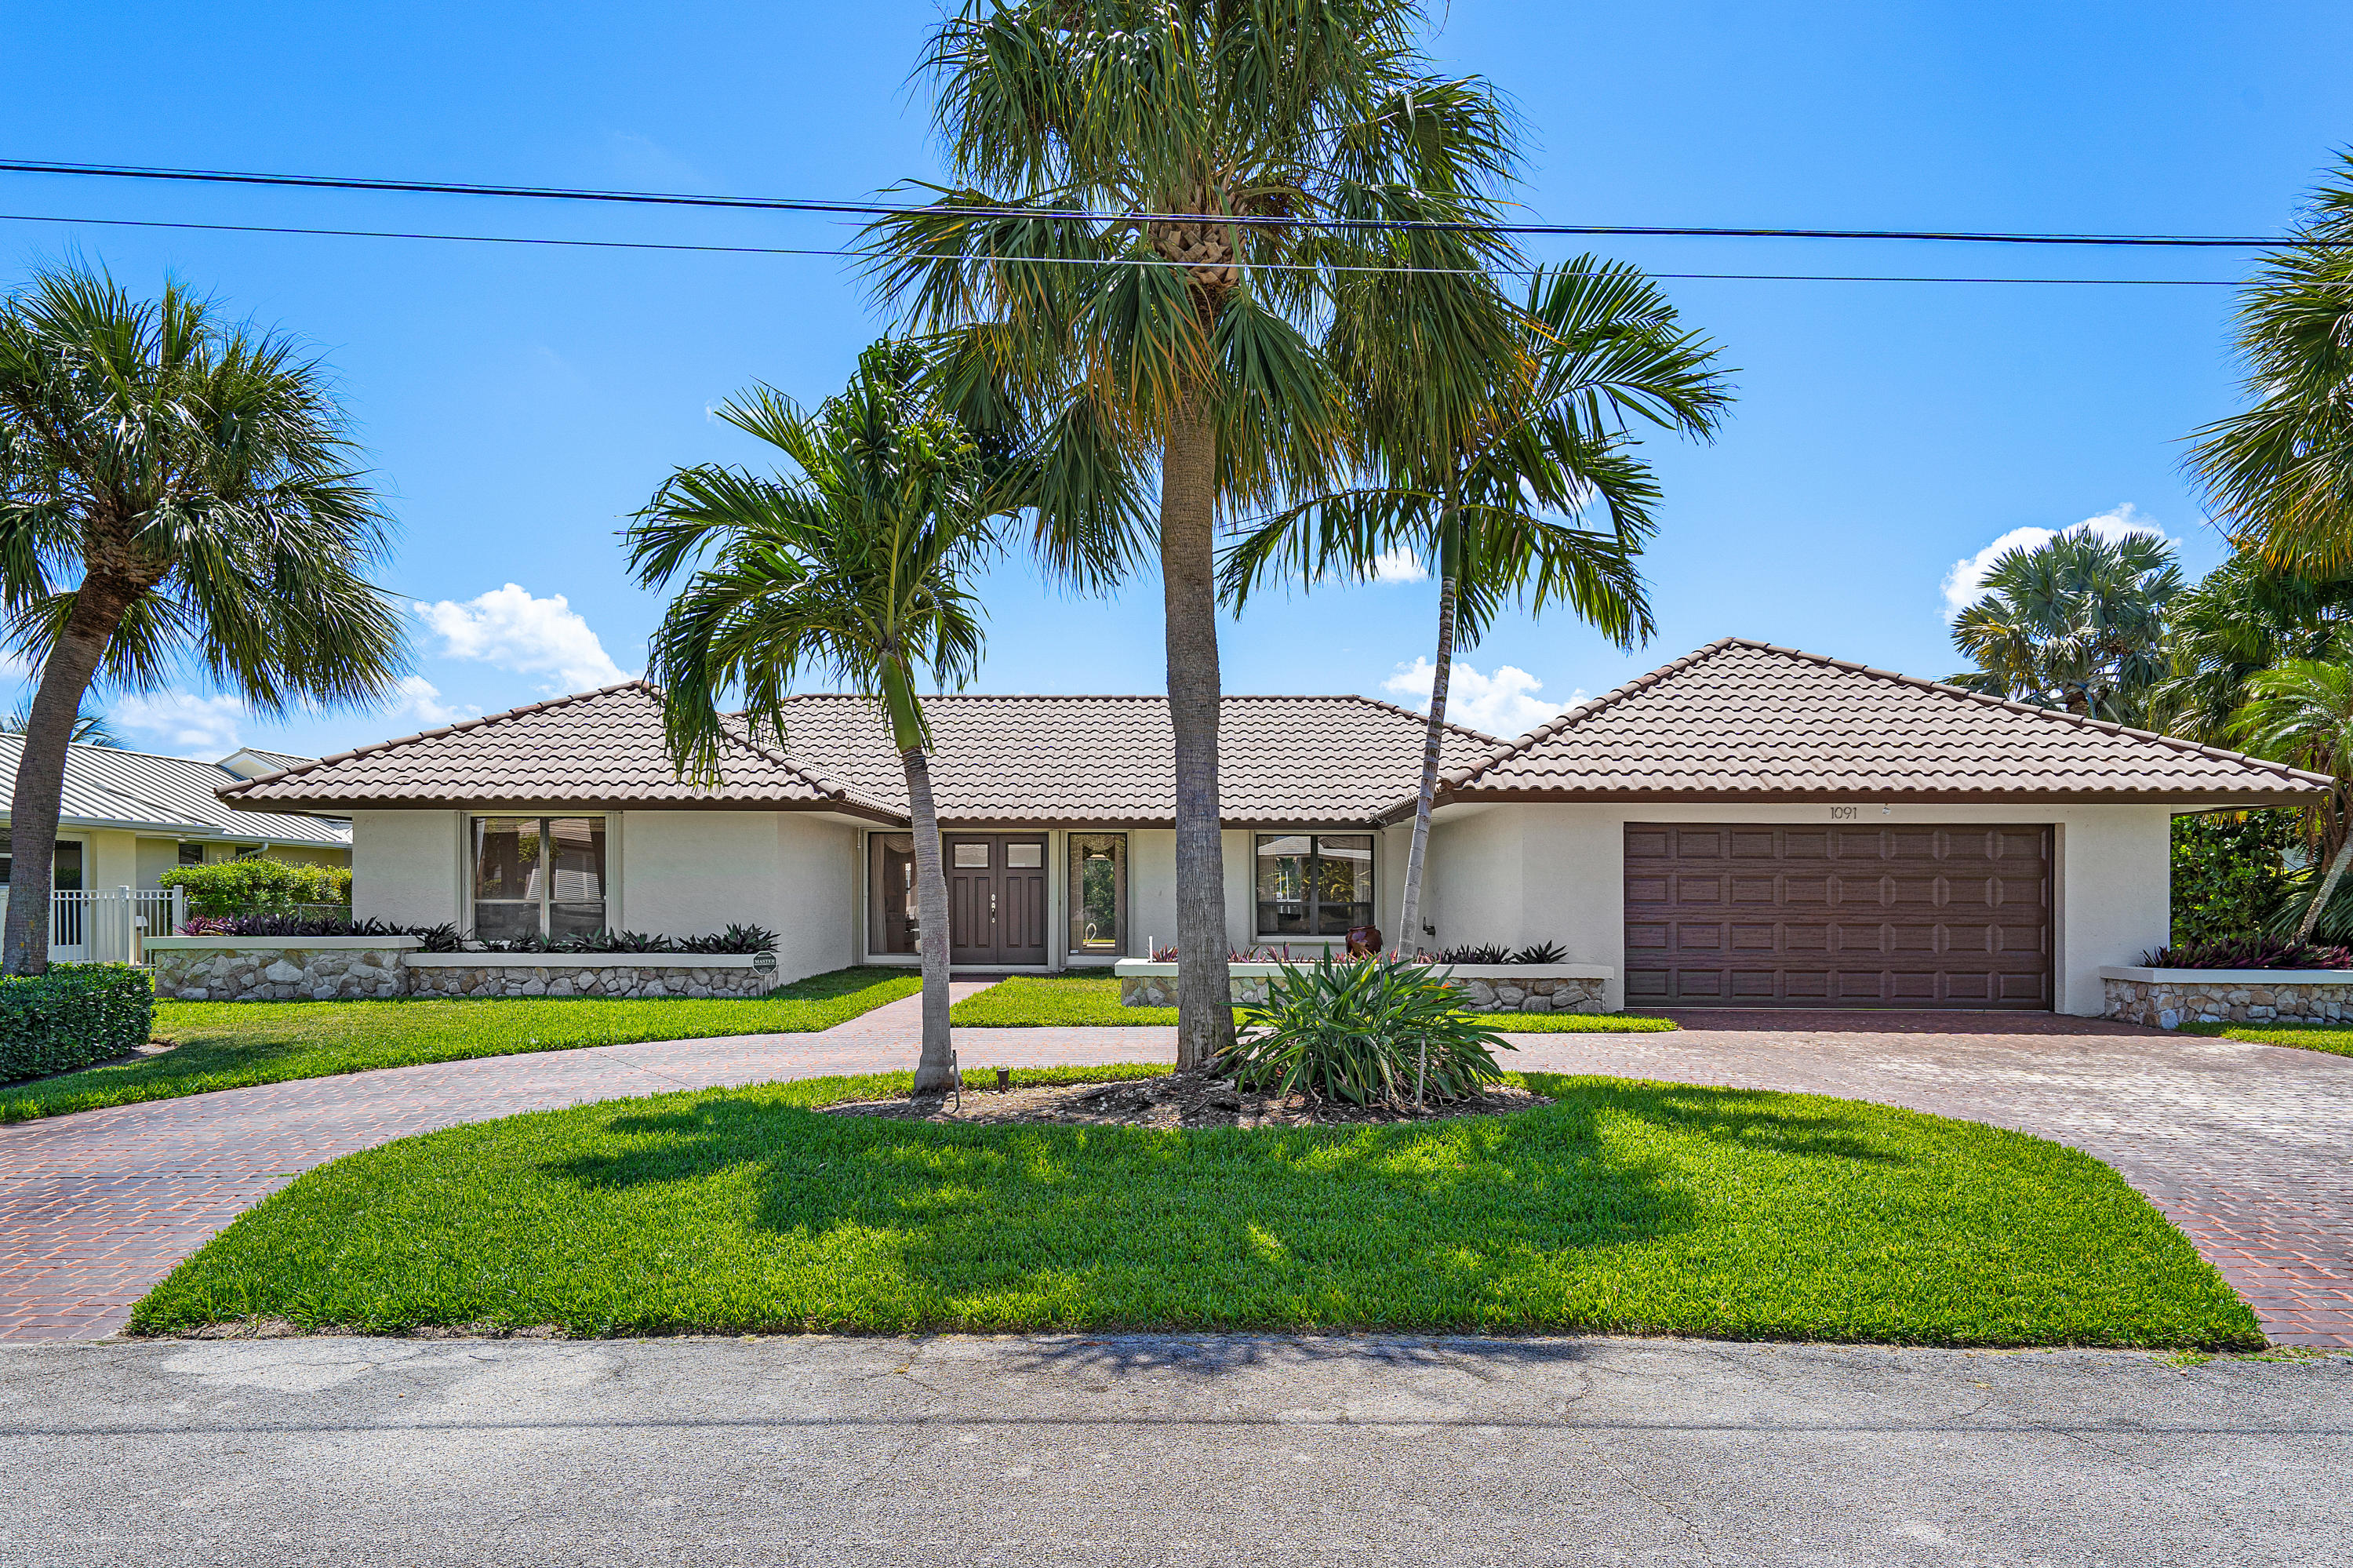 New Home for sale at 1091 Coral Way in Singer Island